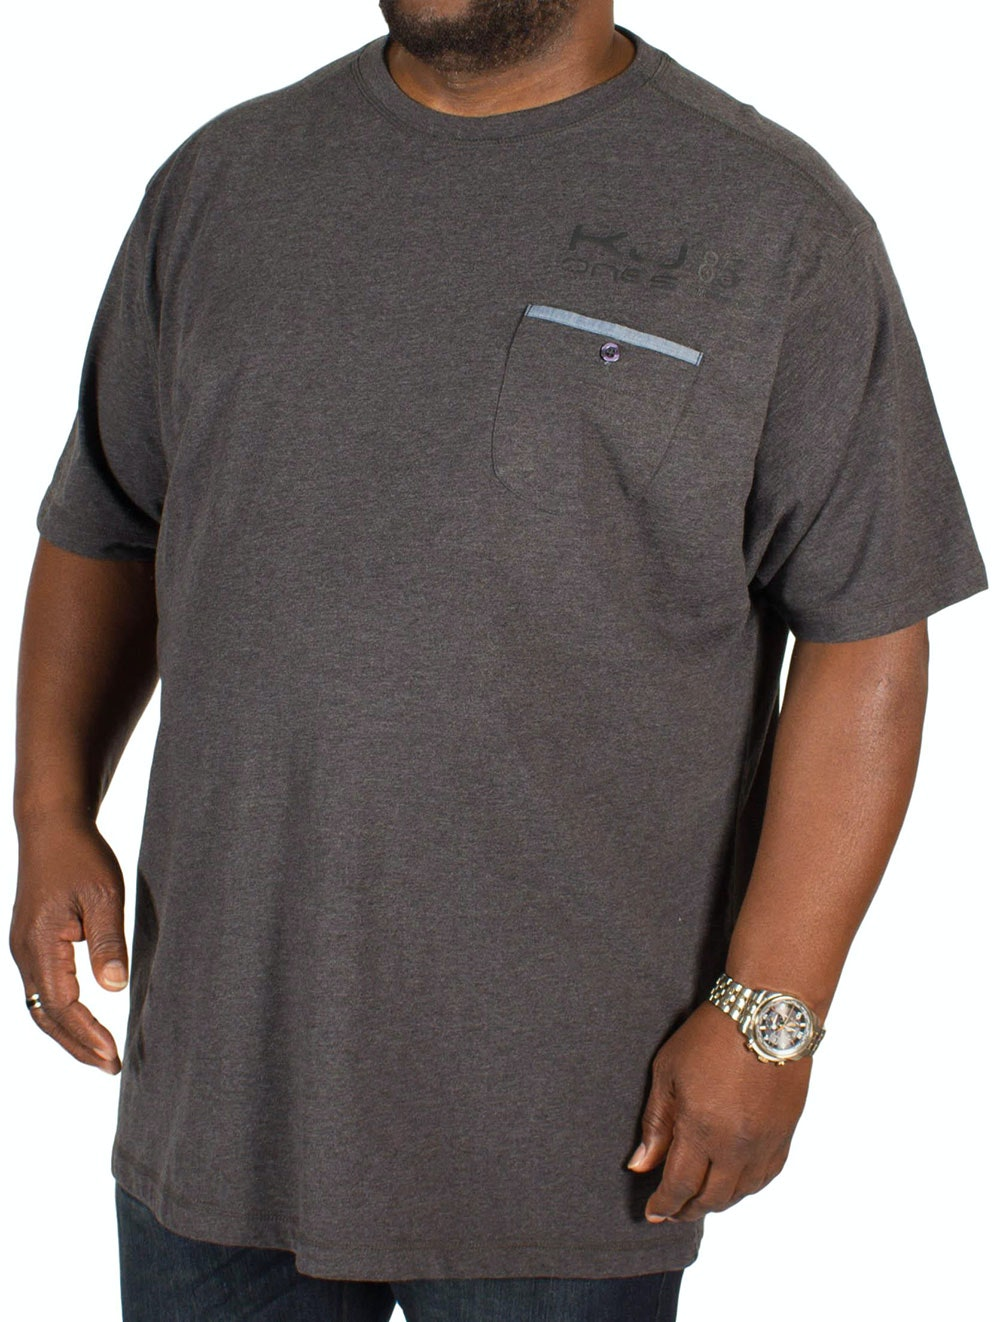 KAM Melange Pocket T-Shirt Charcoal